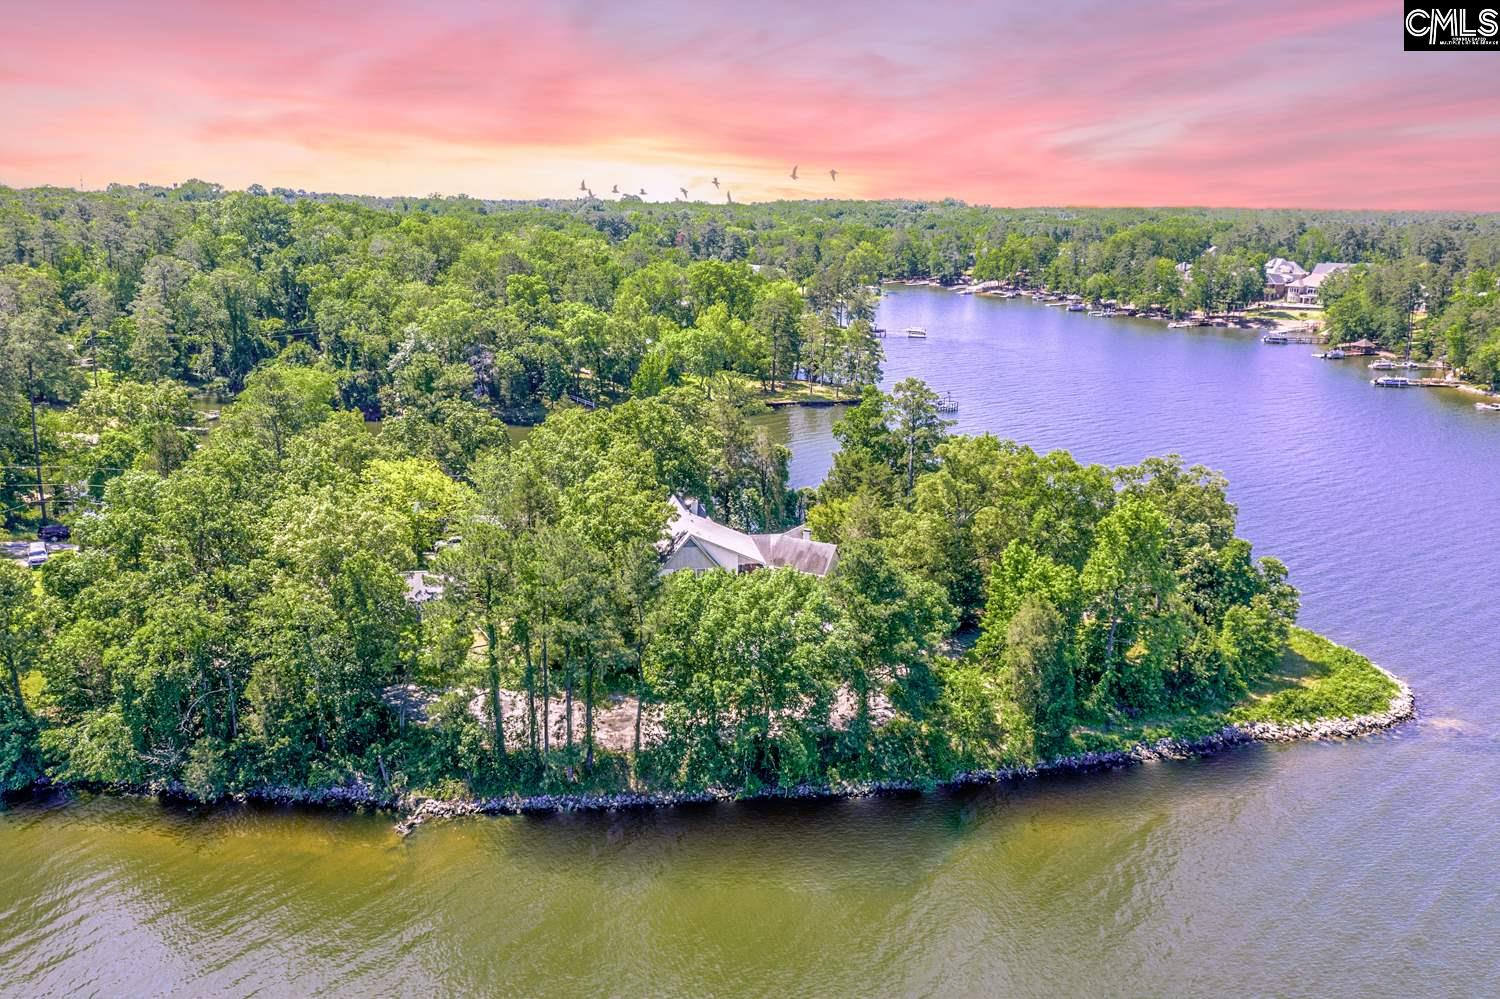 Spectacular lakefront property.  This is a rare opportunity to purchase a large lot on Lake Murray that is close in, with panoramic views and just under 1000 feet of water frontage.  Property already has rip rap on water frontage, boat ramp and existing dock.  There is an older home, garage and outbuildings on the property but the value is in the land itself.  This is a beautiful, private peninsula with lush vegetation.    Please do NOT try to access the property by water or private drive without listing agent present.